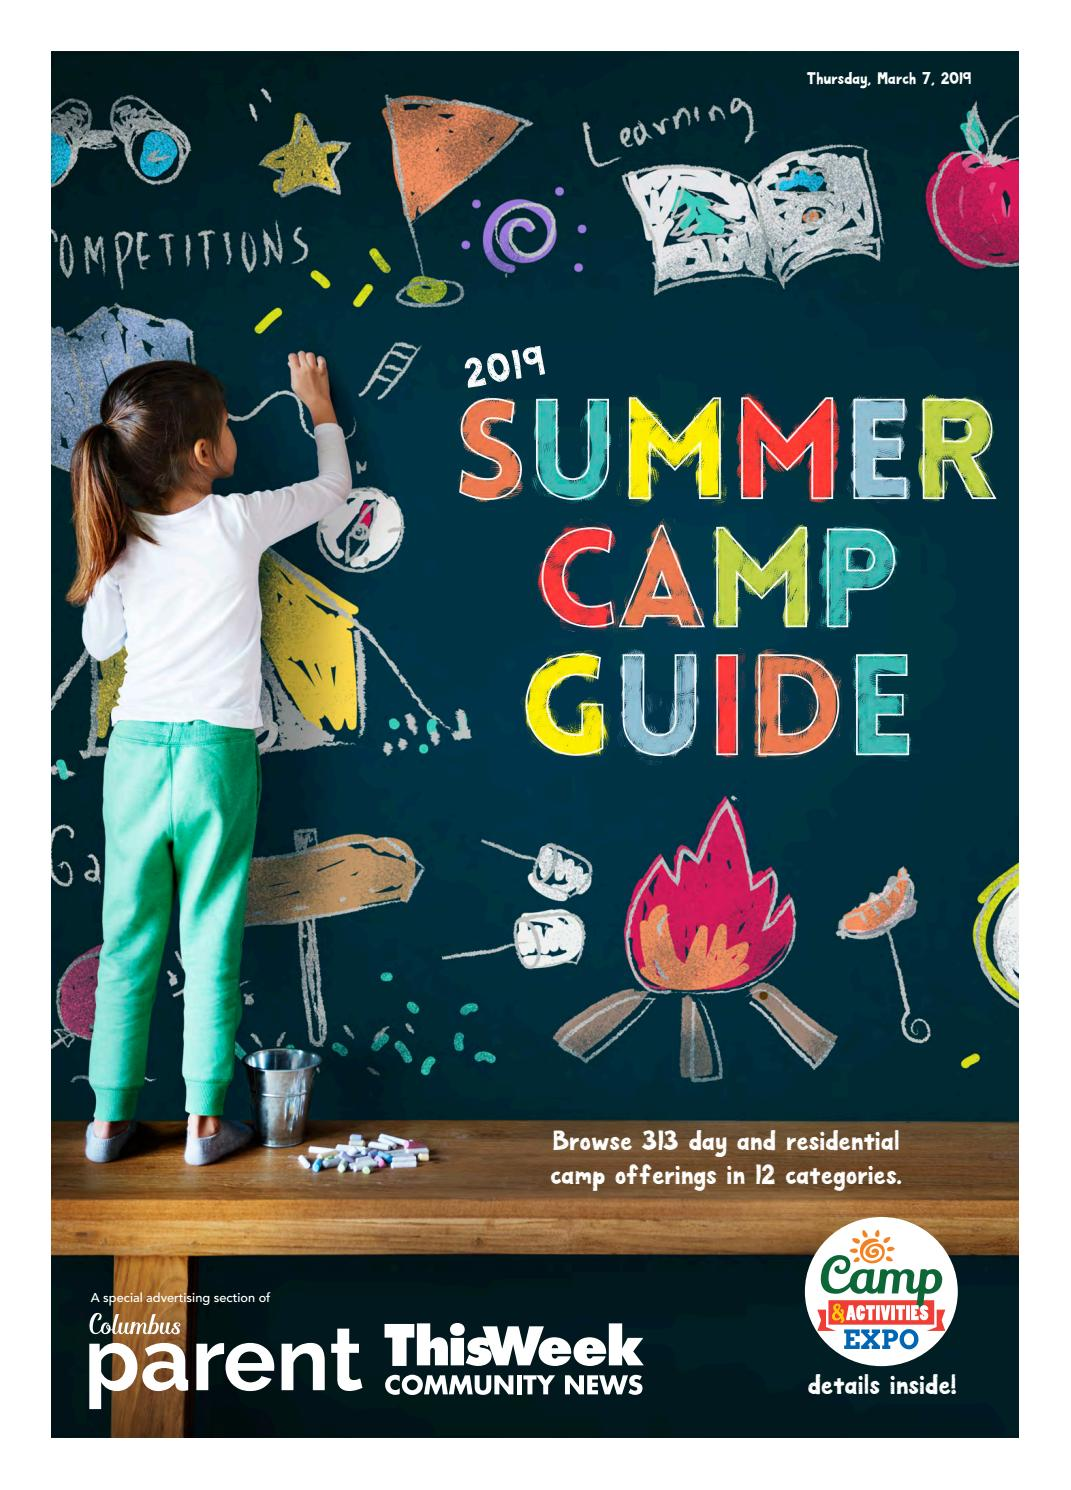 2019 Summer Camp Guide and Activities Expo by The Columbus